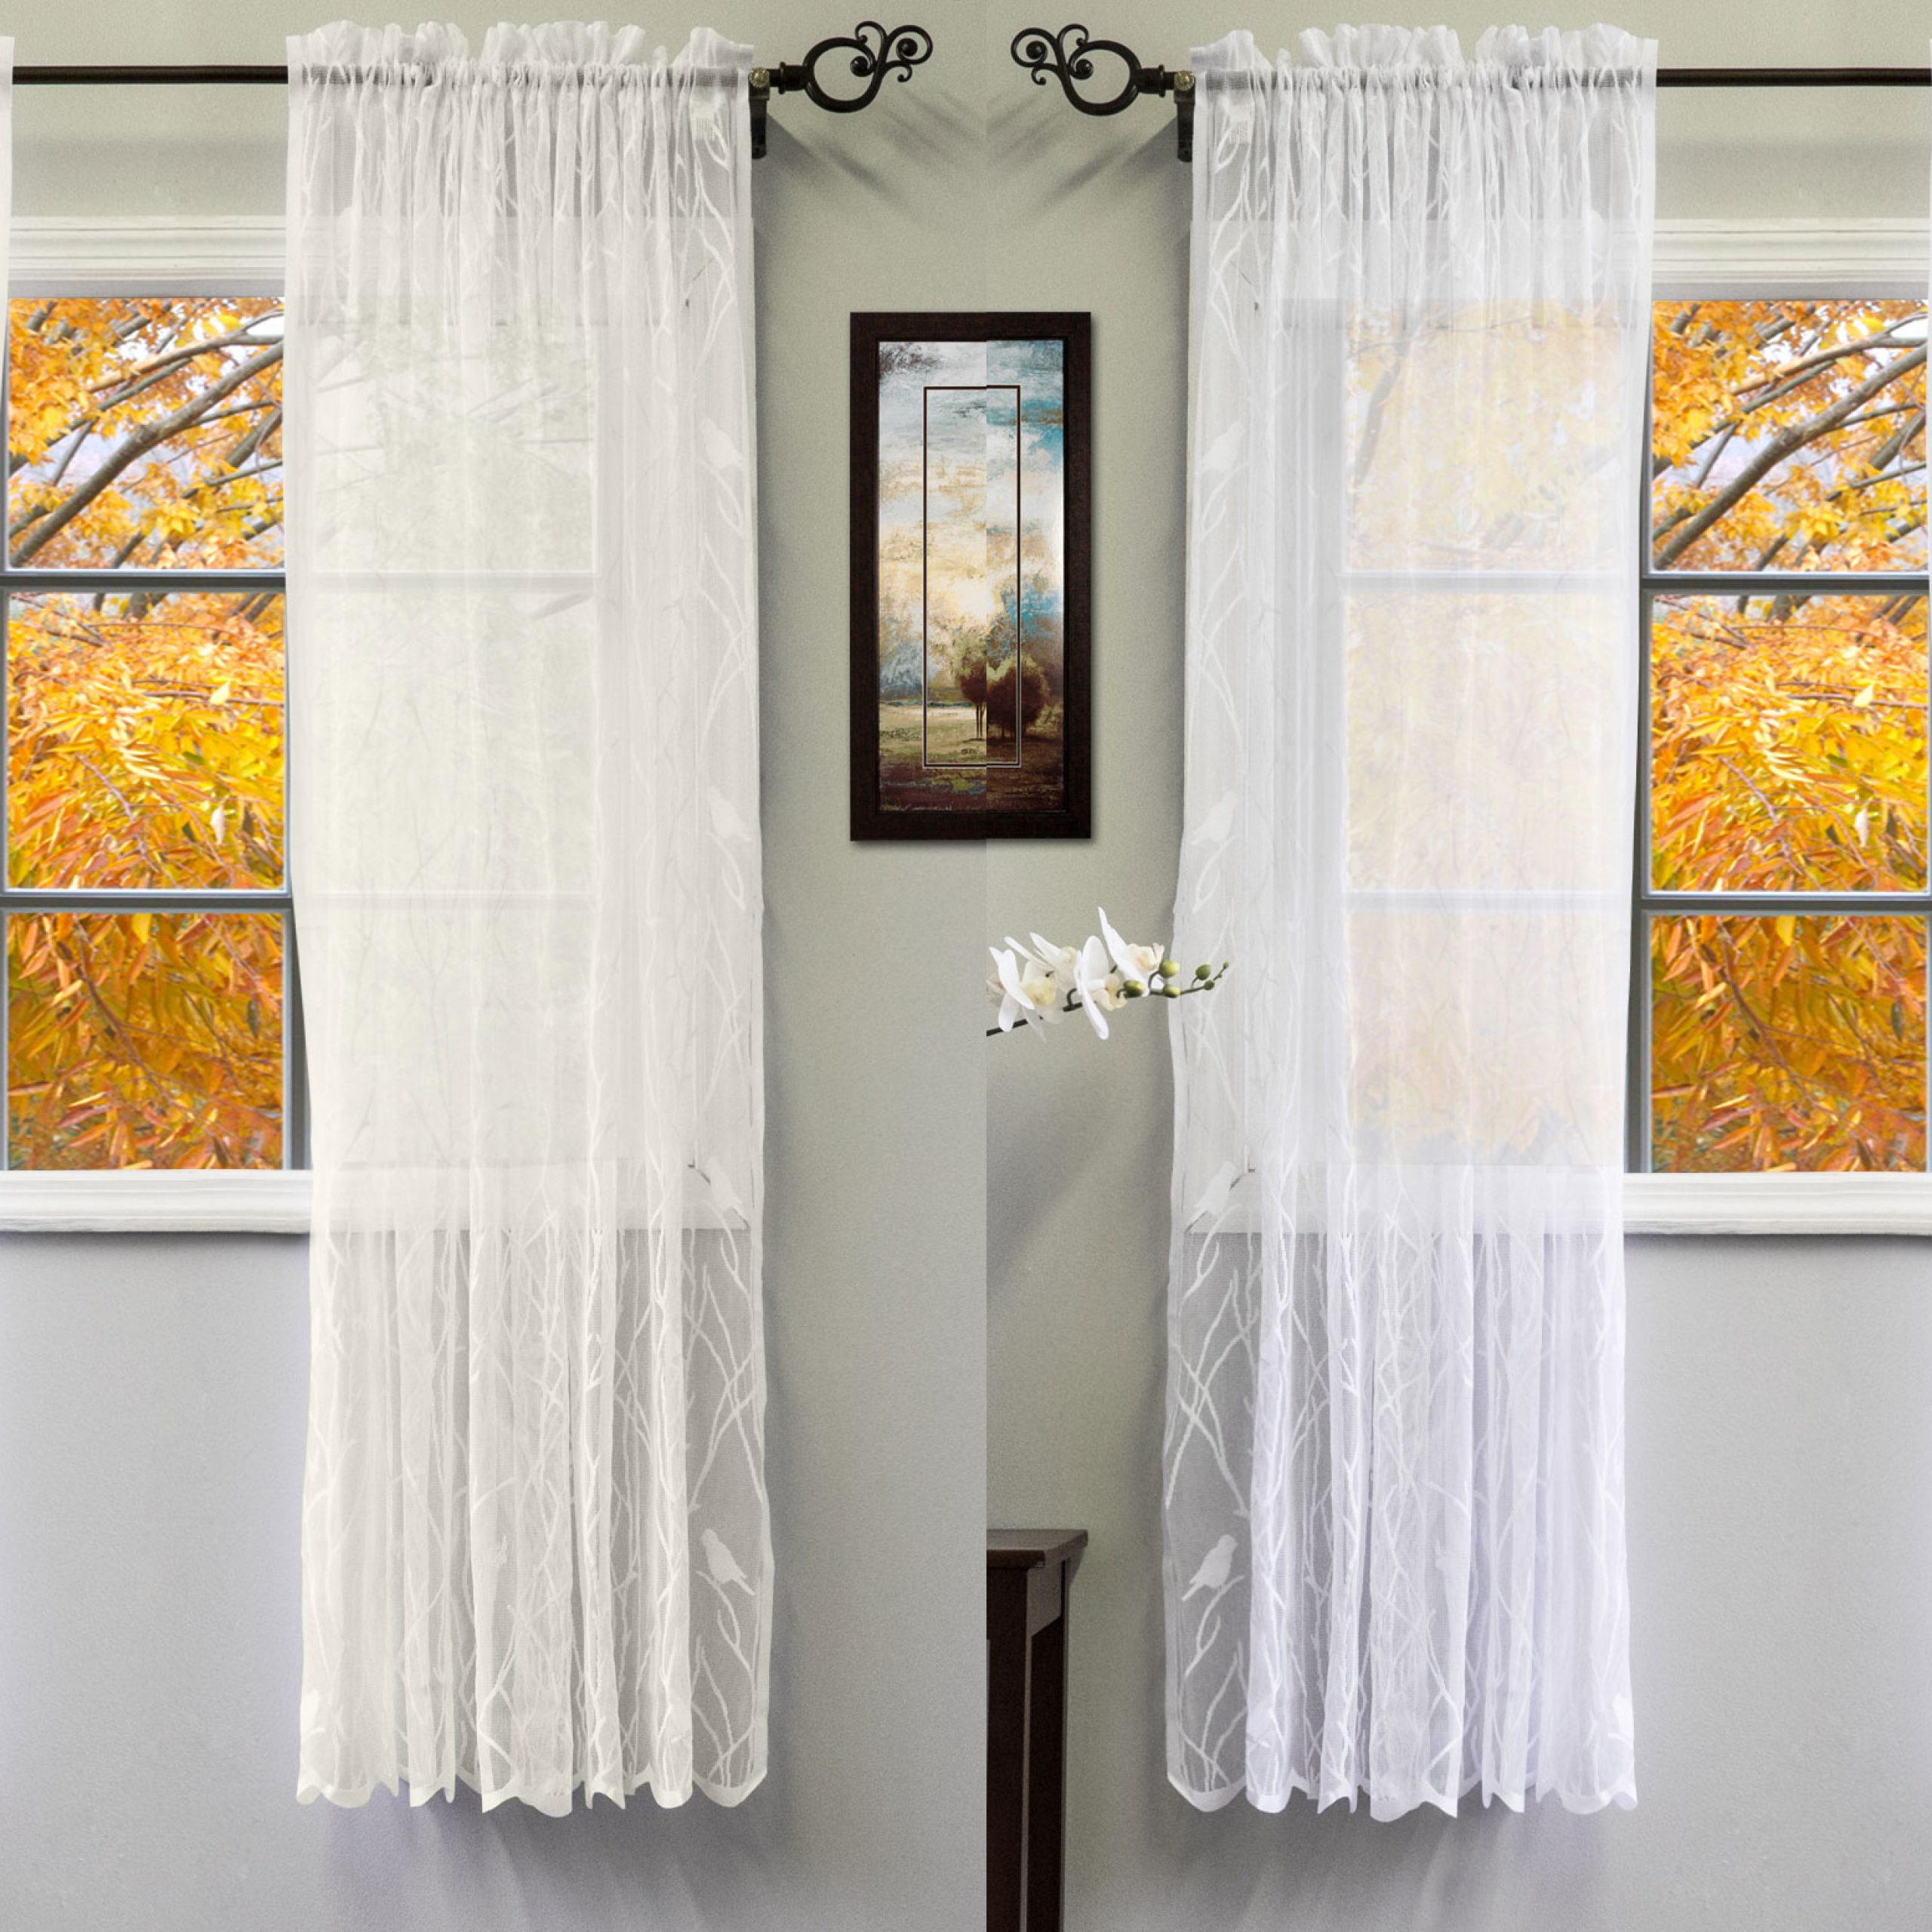 """Details About Knit Lace Polyester Songbird Motif 56""""x 63"""" Window Curtain Panel Throughout Ivory Knit Lace Bird Motif Window Curtain (View 5 of 20)"""